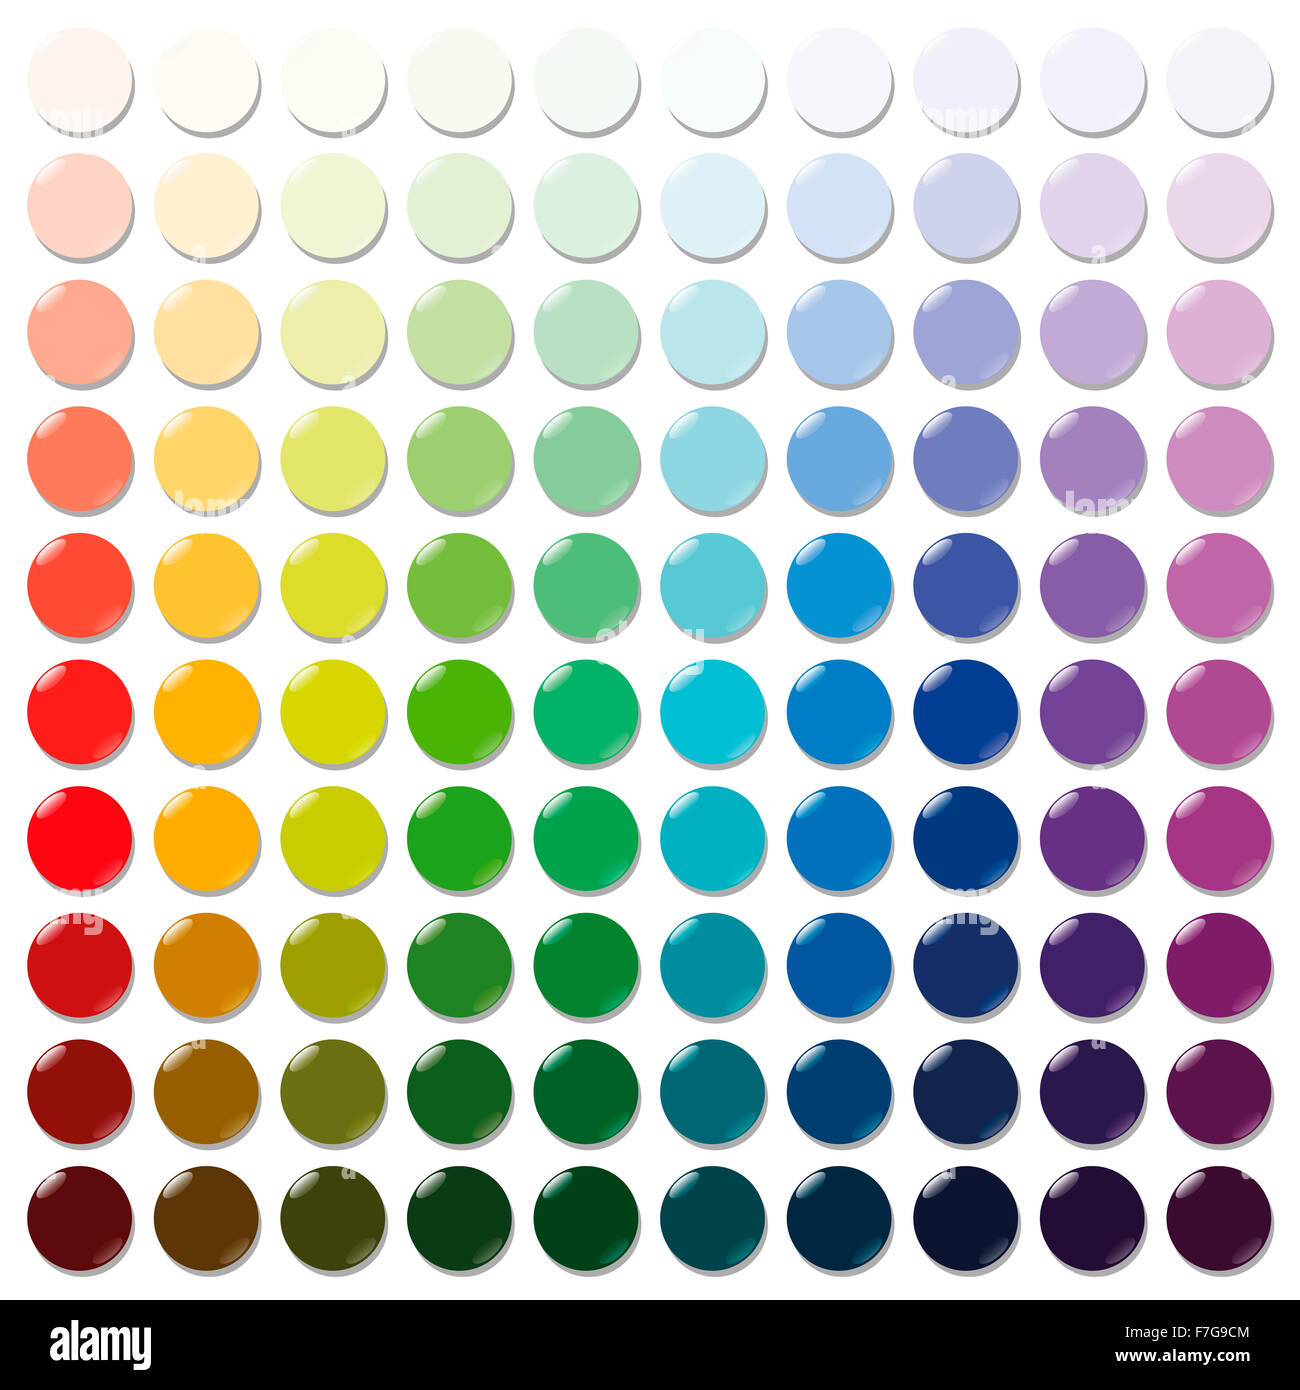 Counters - exactly one hundred round colorful plastic tokens sorted like a color swatch - from very bright to intense - Stock Image